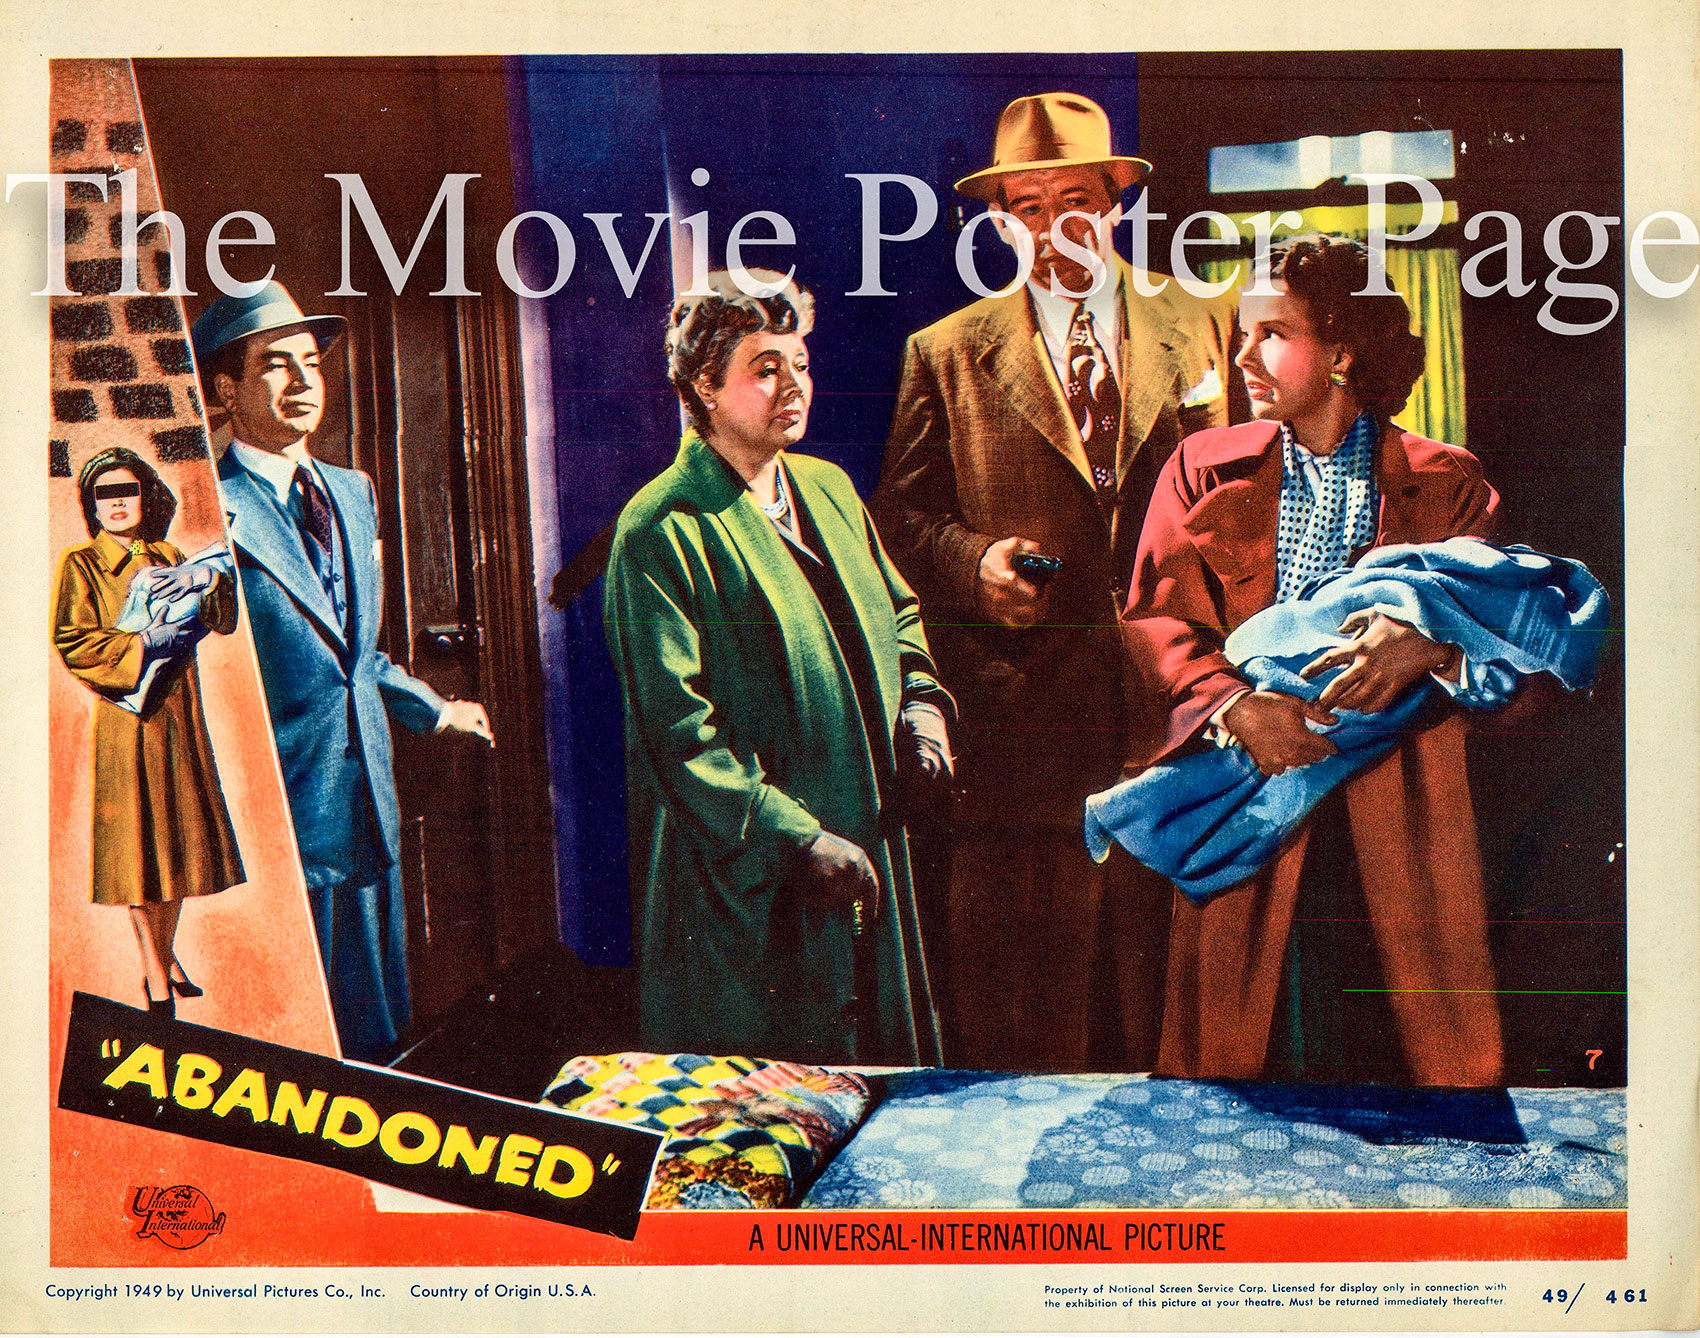 Pictured is the Number 7 US lobby card for the 1949 Joseph M. Newman film Abandoned, starring Gale Storm.